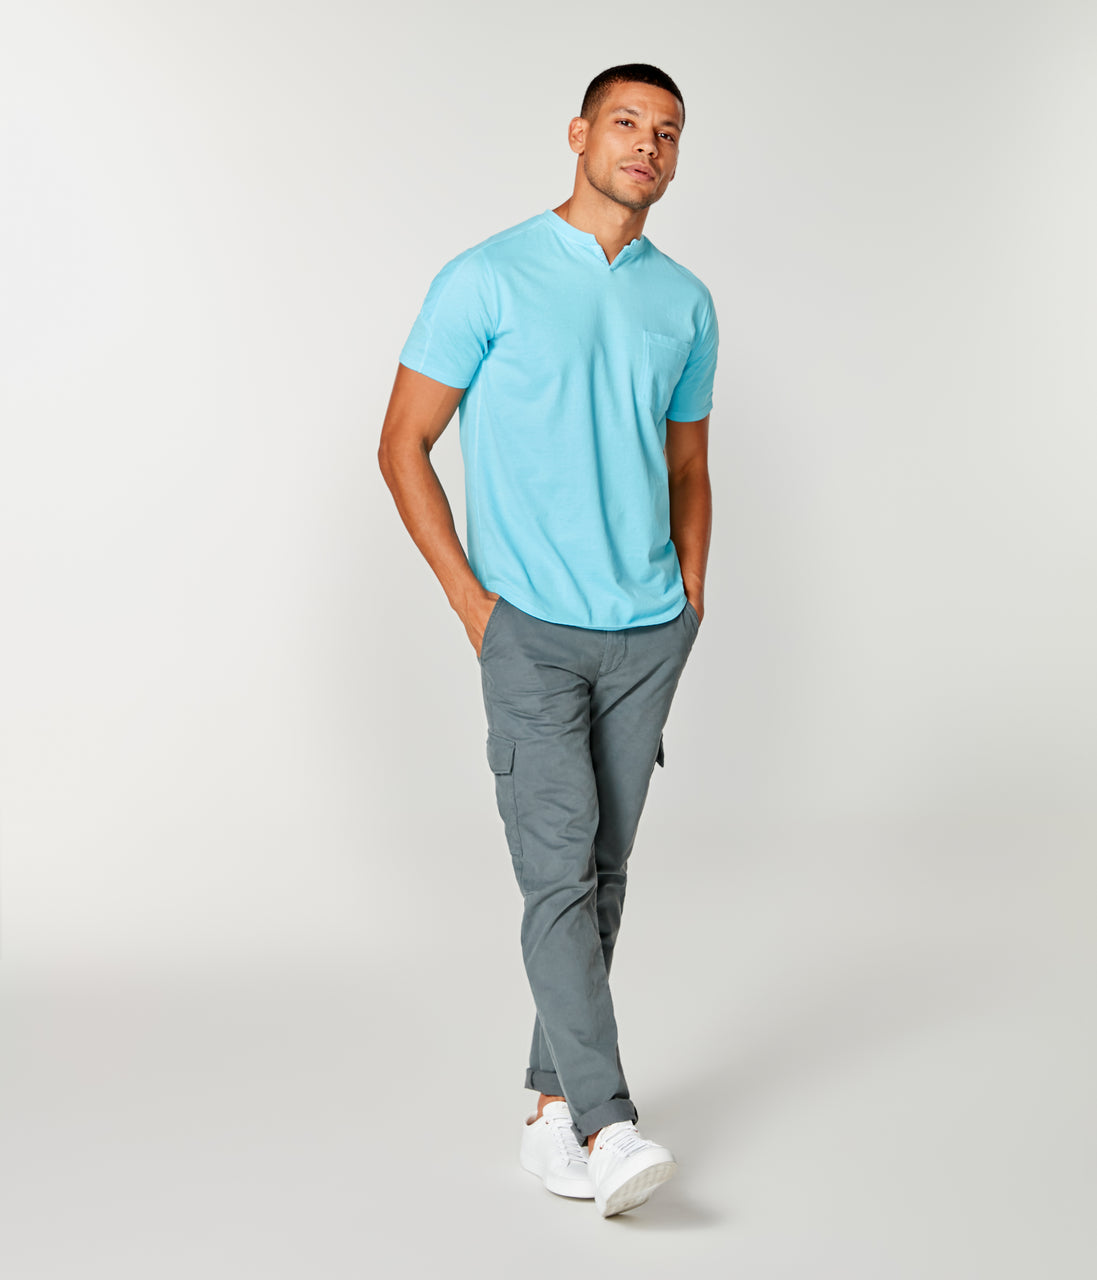 Premium Cotton Jersey Notch Neck Crew - Blue Topaz - Good Man Brand - Premium Cotton Jersey Notch Neck Crew - Blue Topaz